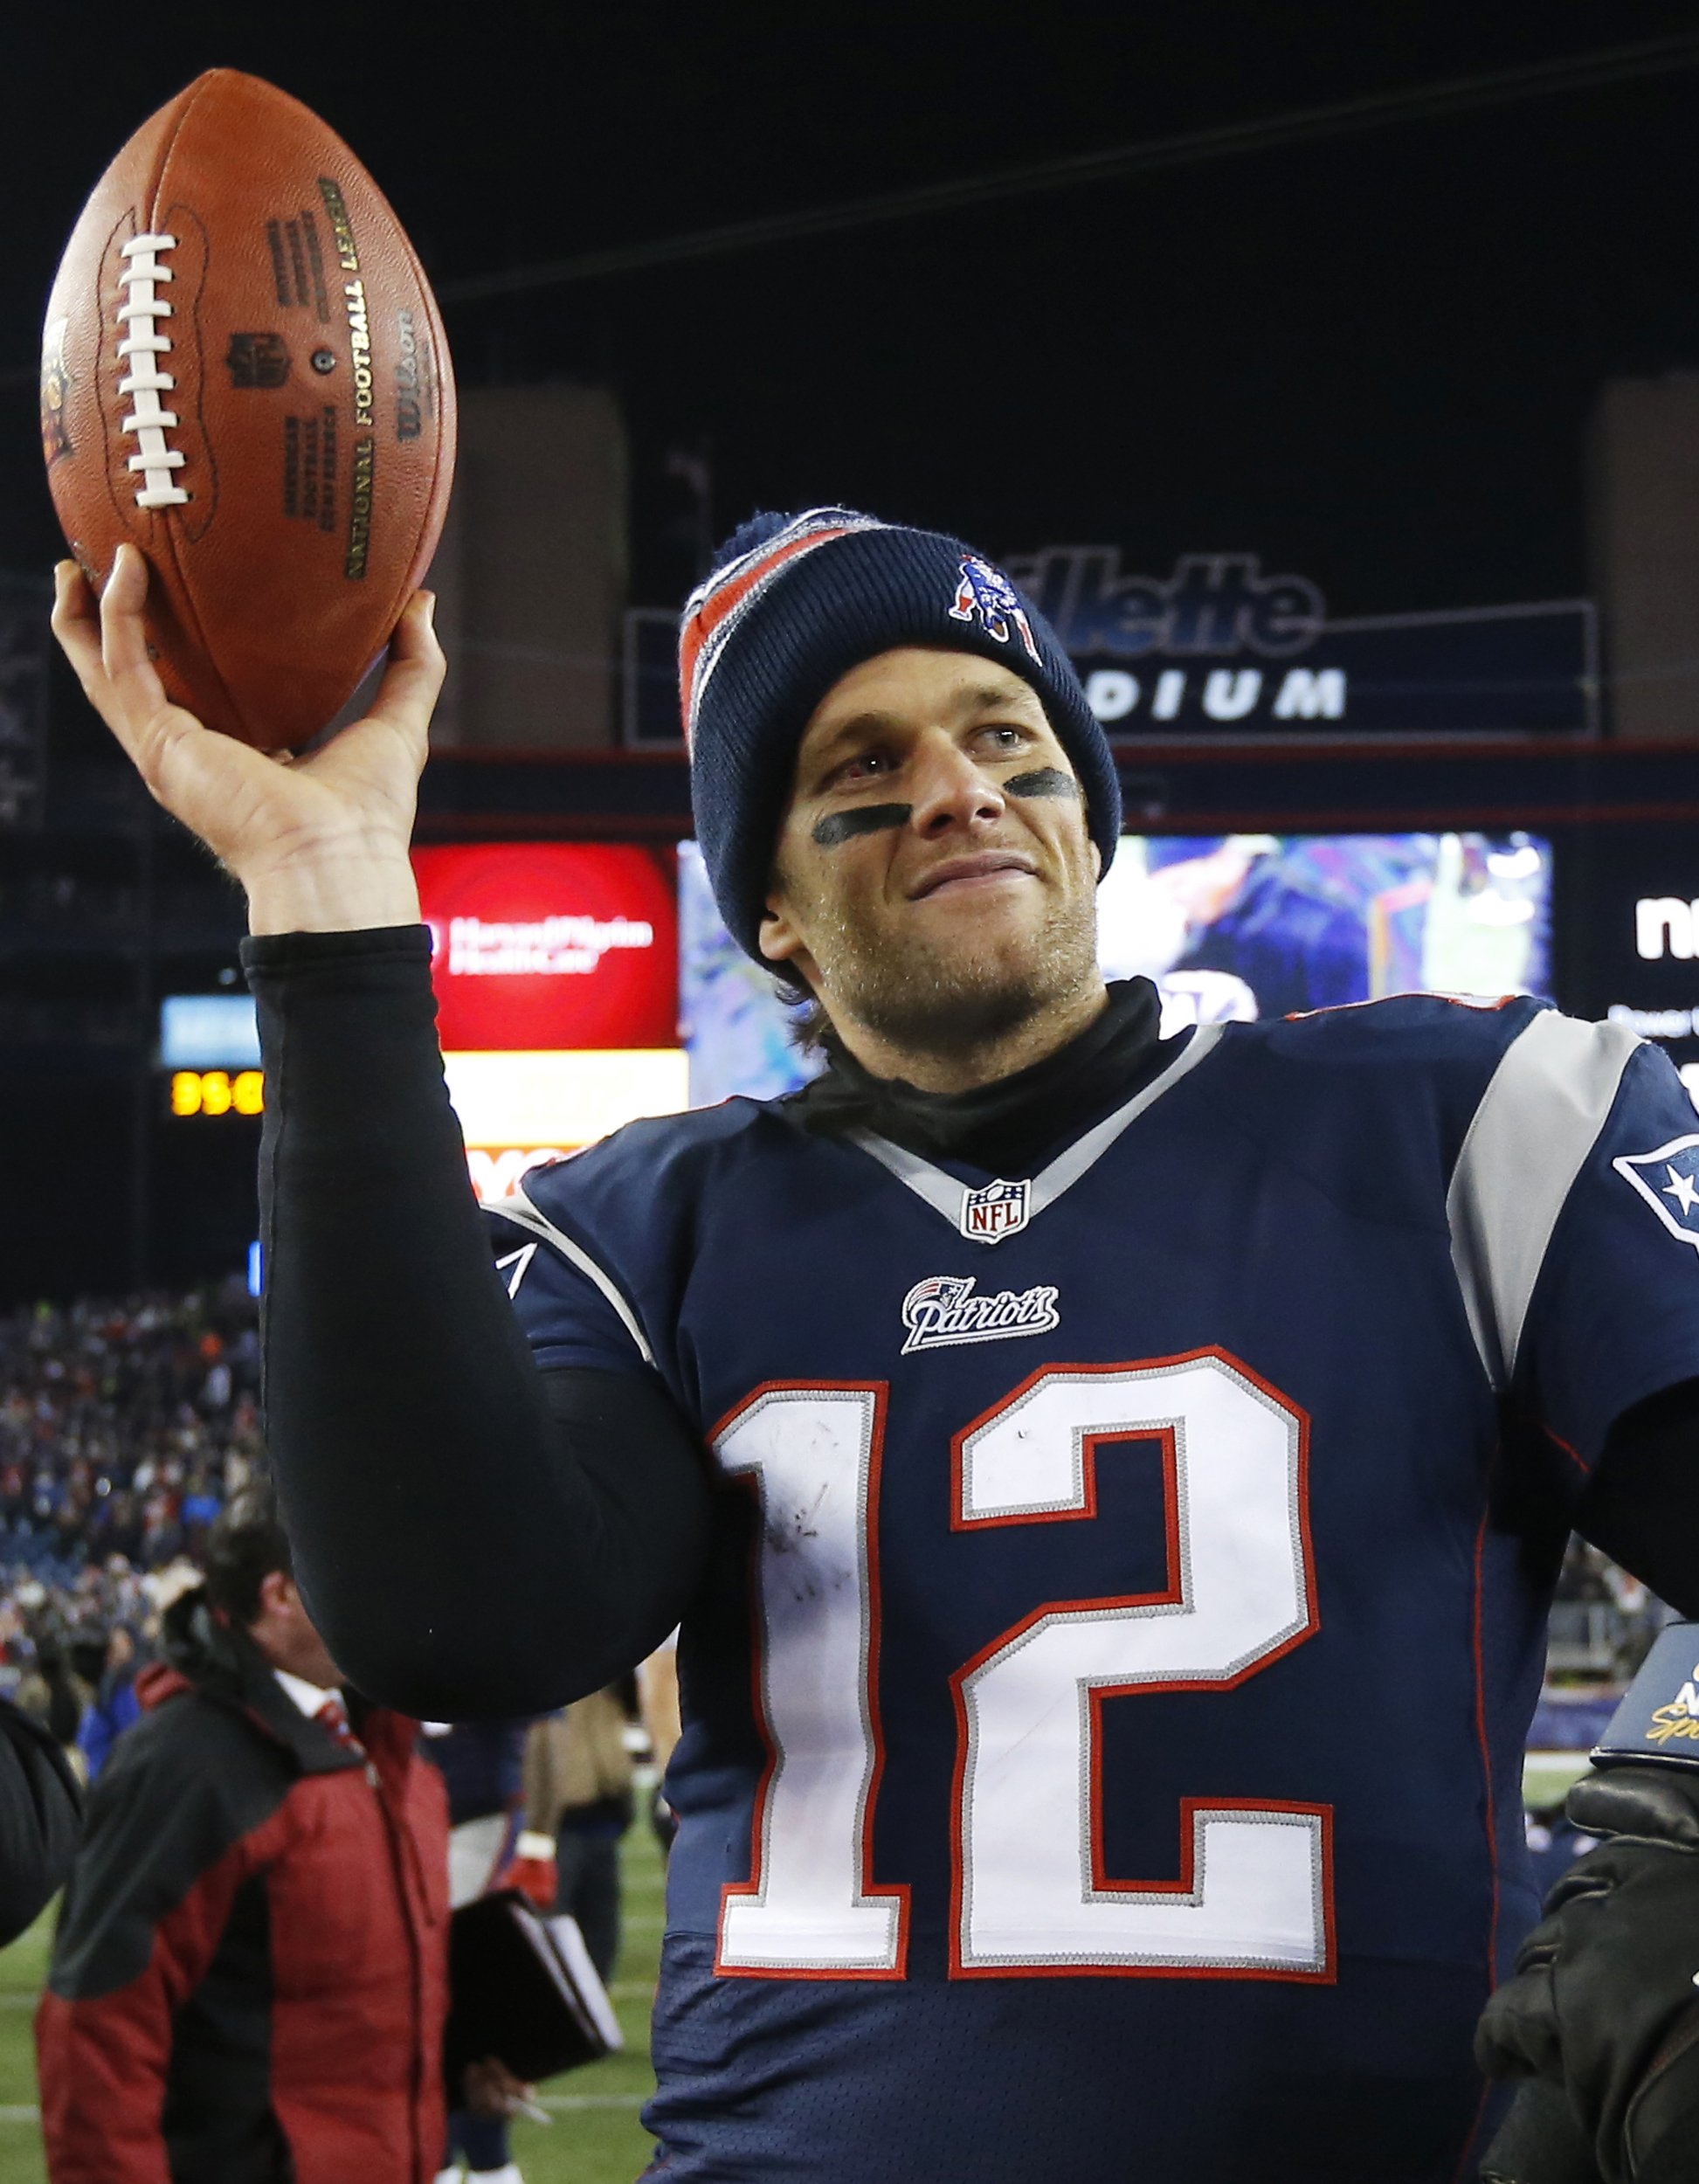 FILE - In this Jan. 10, 2015, file photo, New England Patriots quarterback Tom Brady holds up the game ball after an NFL divisional playoff football game against the Baltimore Ravens in Foxborough, Mass. Brady can suit up for his team's season opener afte